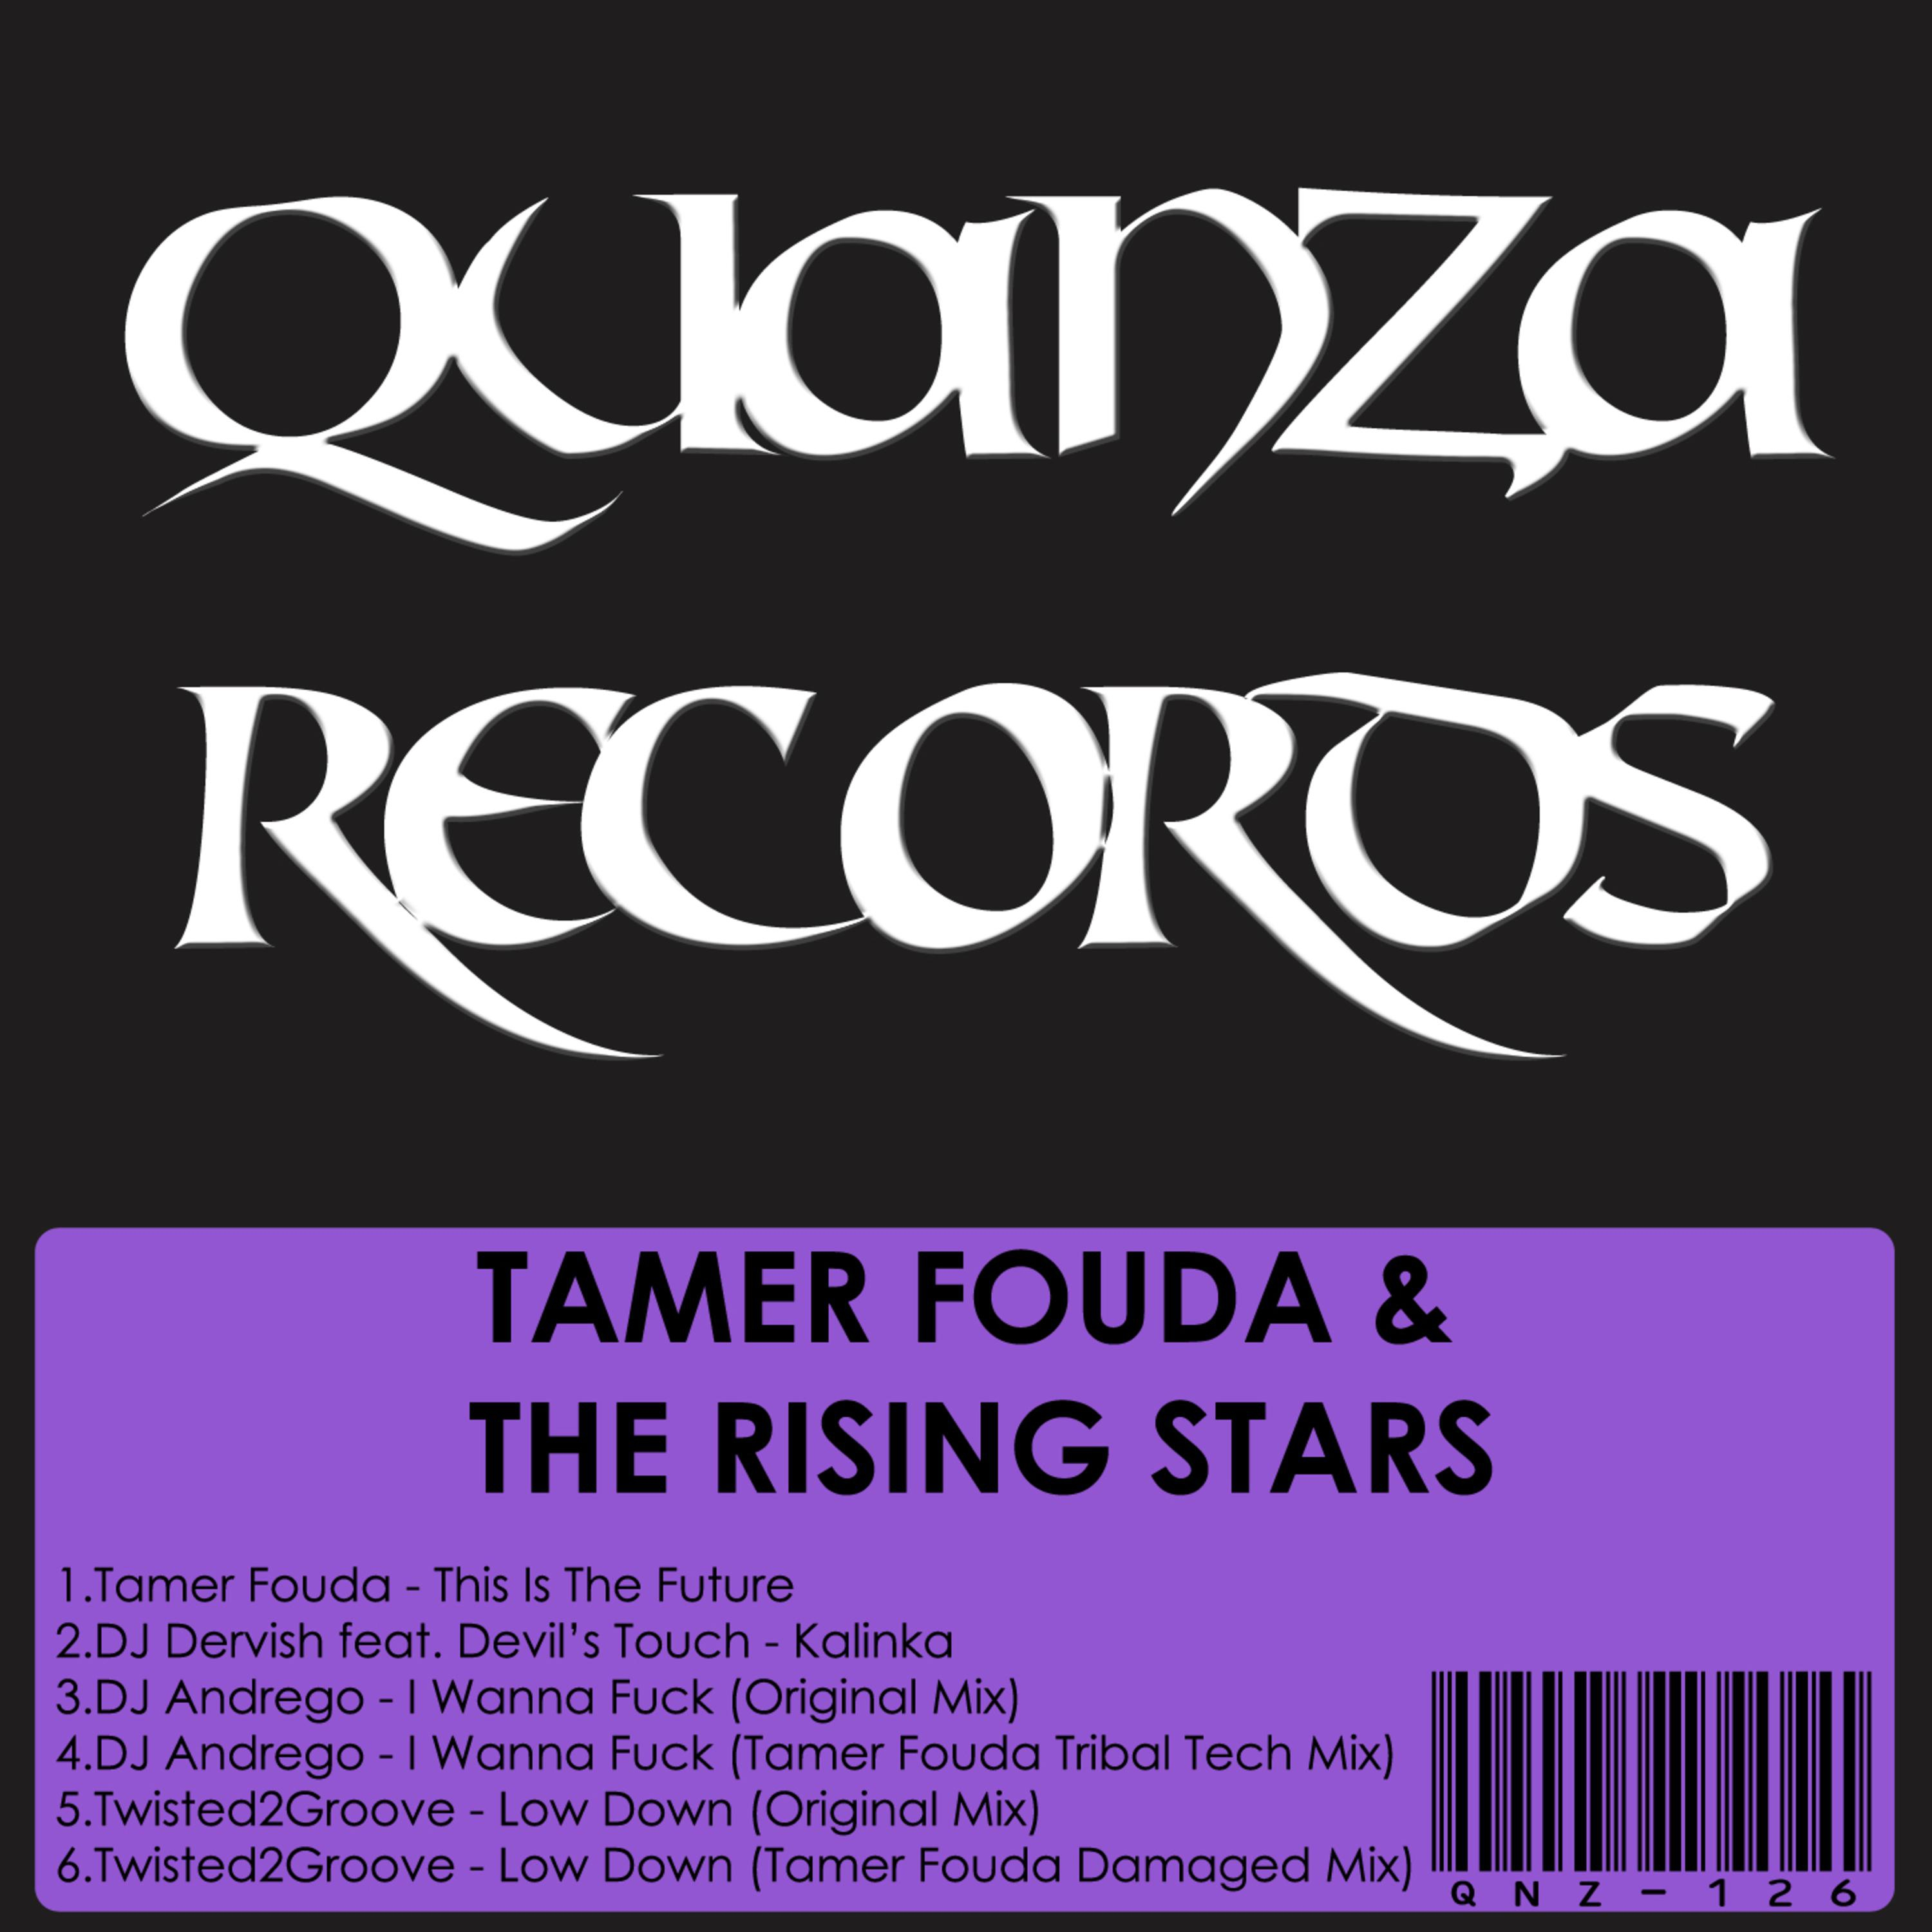 Twisted2Groove - Low Down (Tamer Fouda Damaged Mix)